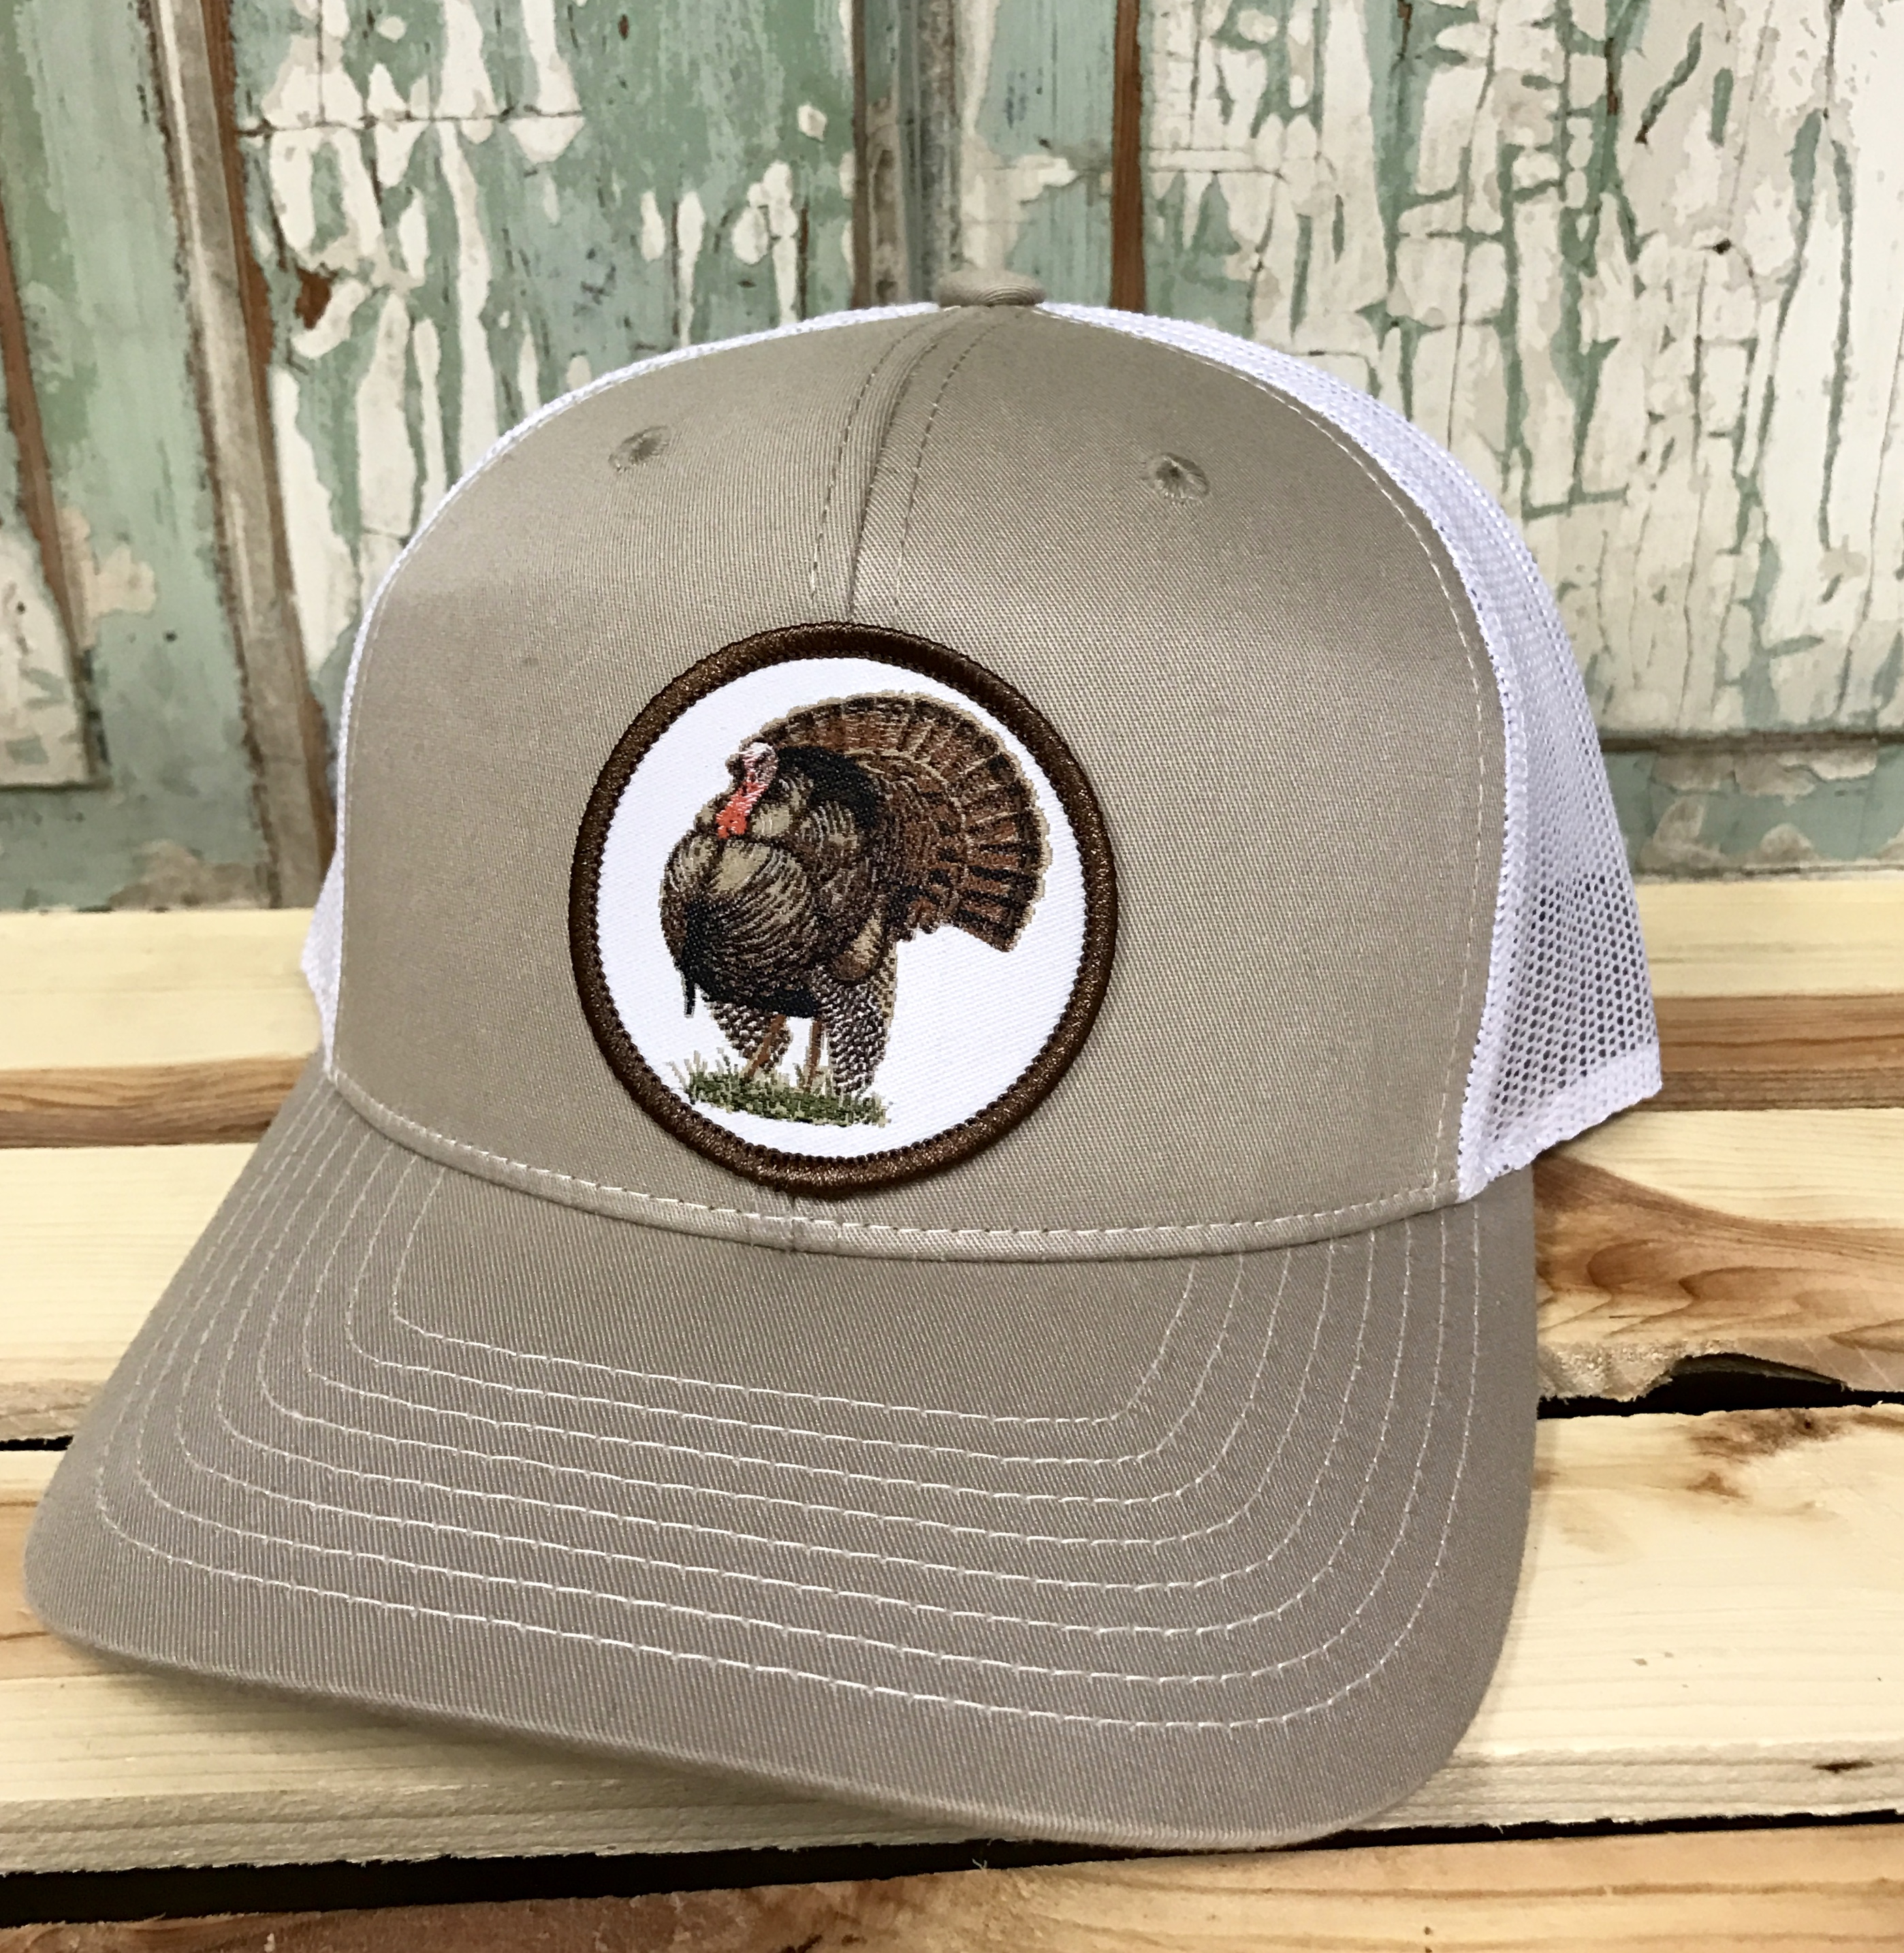 4f794eabfdbd9 AG Outfitters Turkey Patch Trucker Hat Tan White - AG Outfitters NC